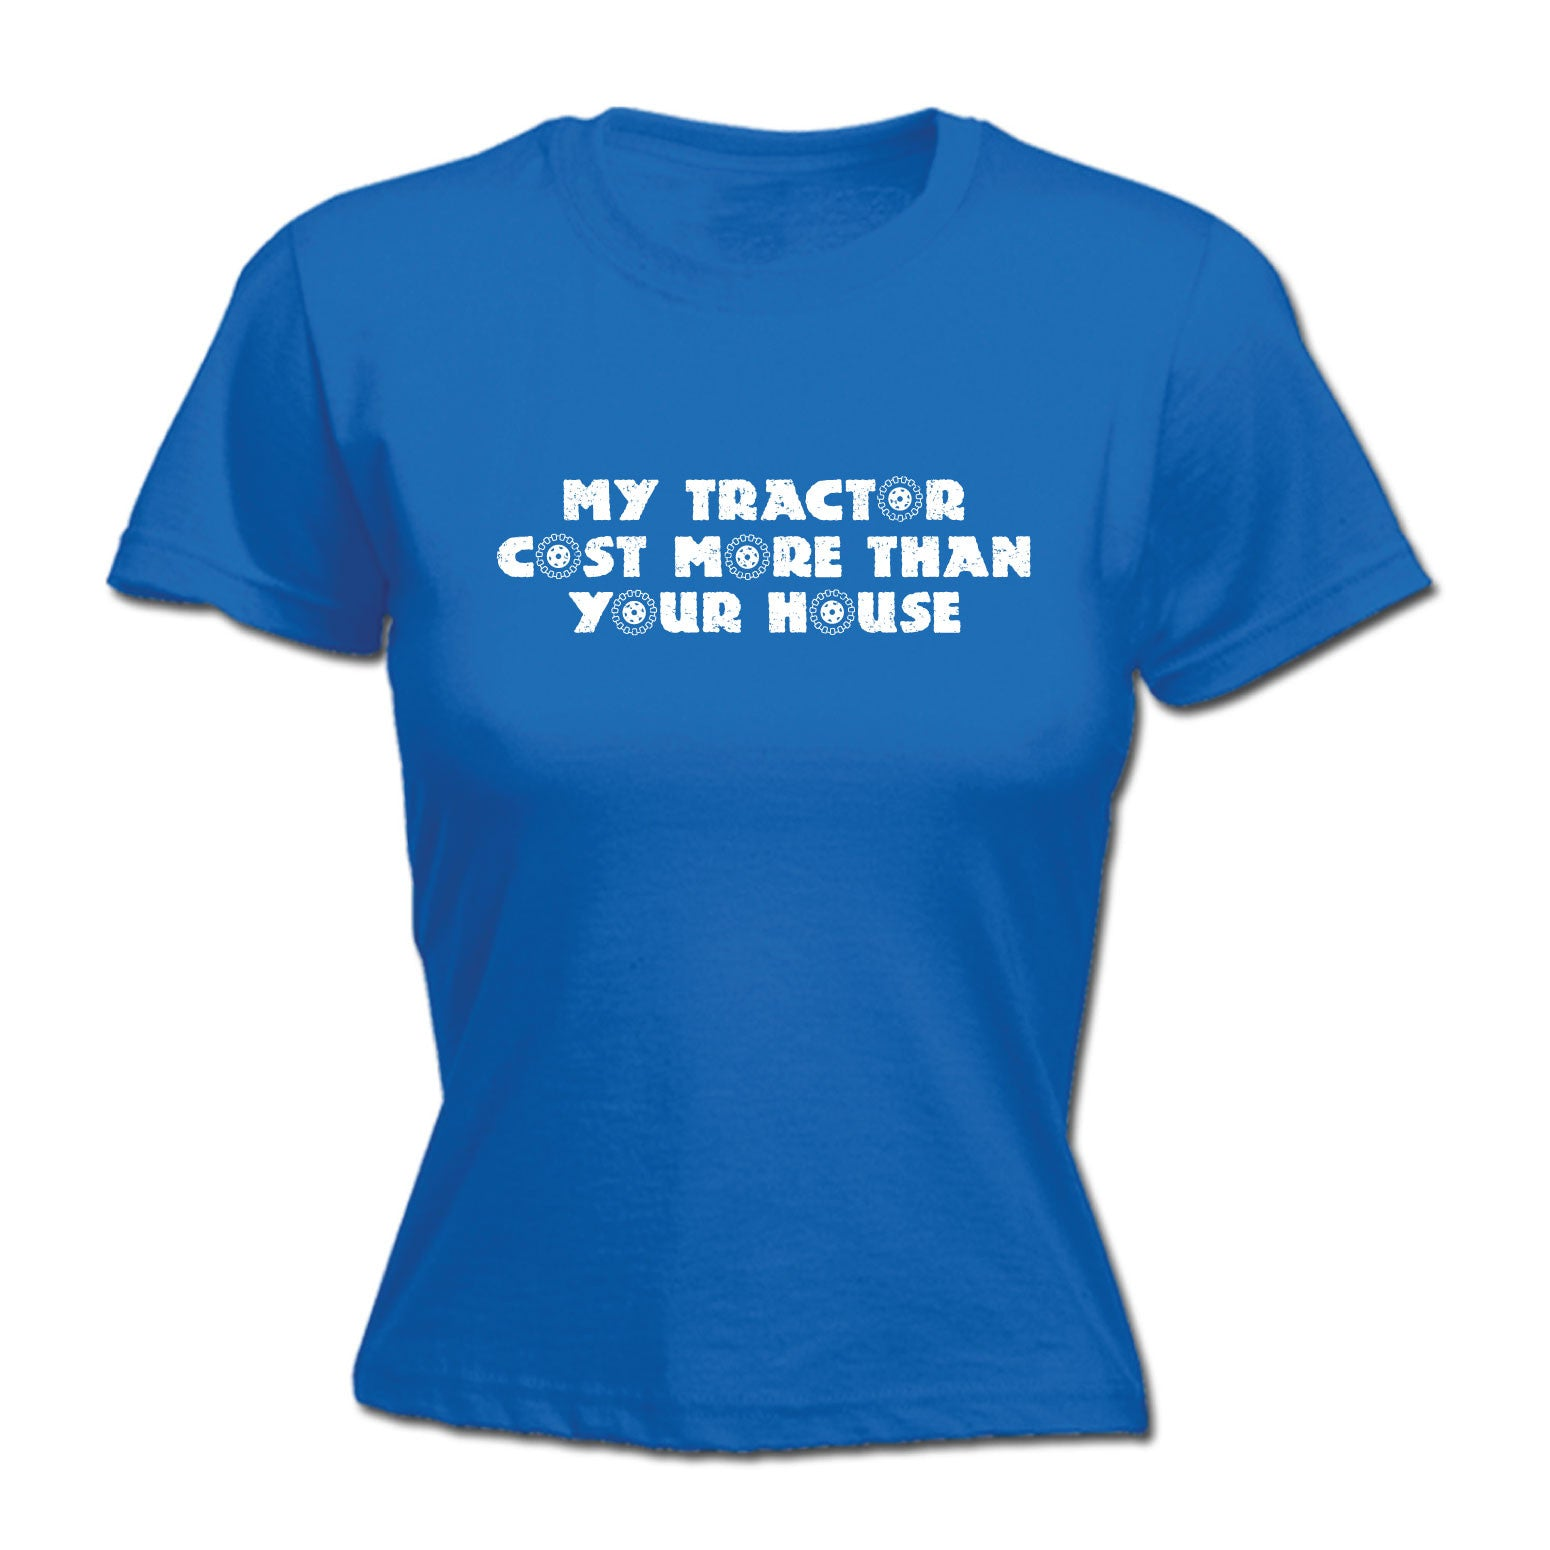 My Tractor Cost More Than Your House Womens T Shirt Farm